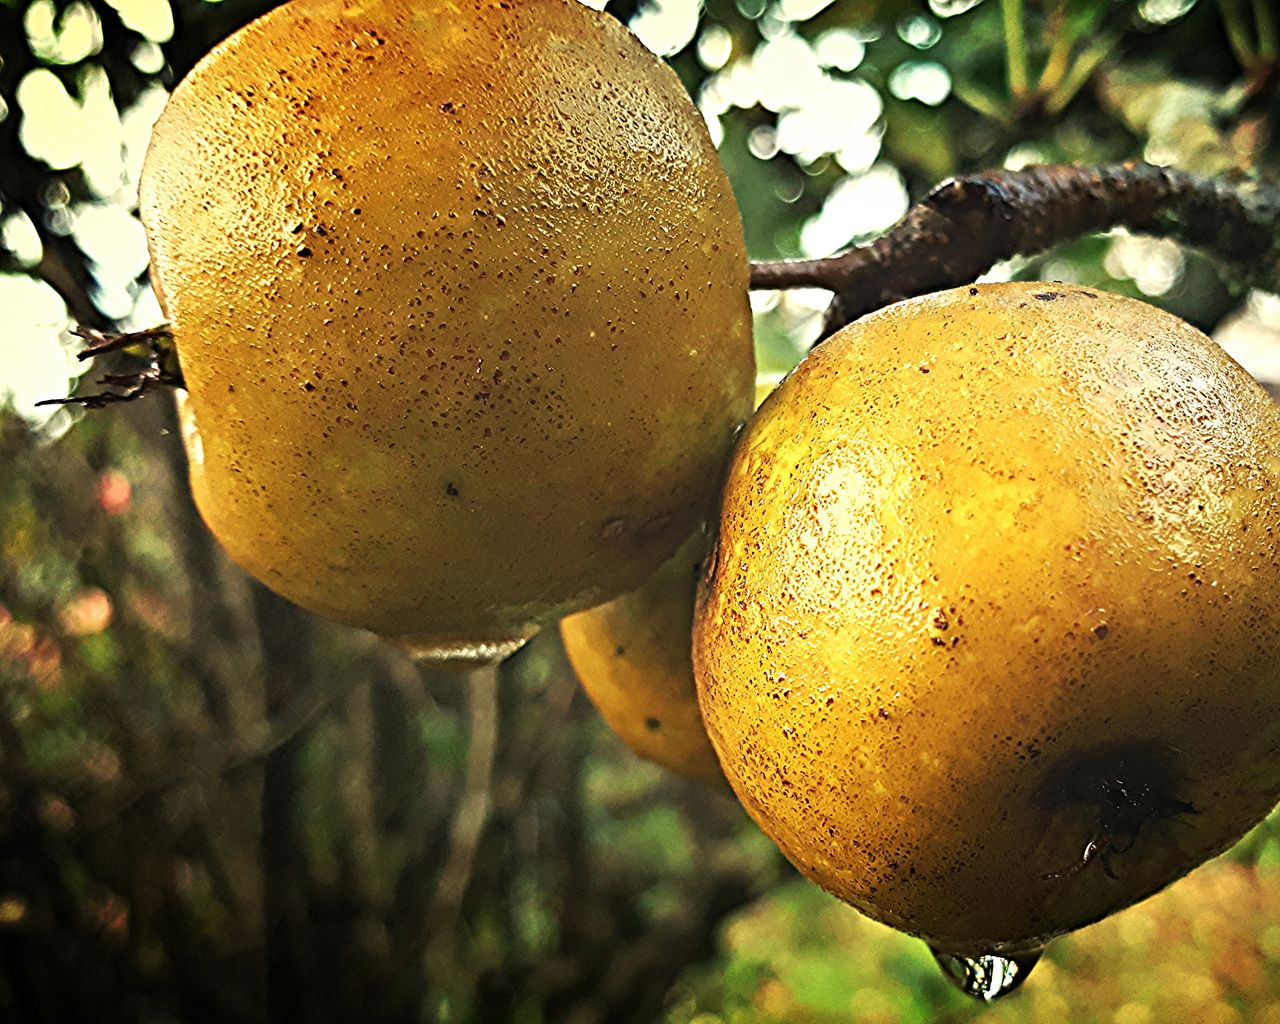 fruit, food and drink, tree, citrus fruit, close-up, no people, food, outdoors, growth, yellow, healthy eating, freshness, focus on foreground, hanging, day, nature, beauty in nature